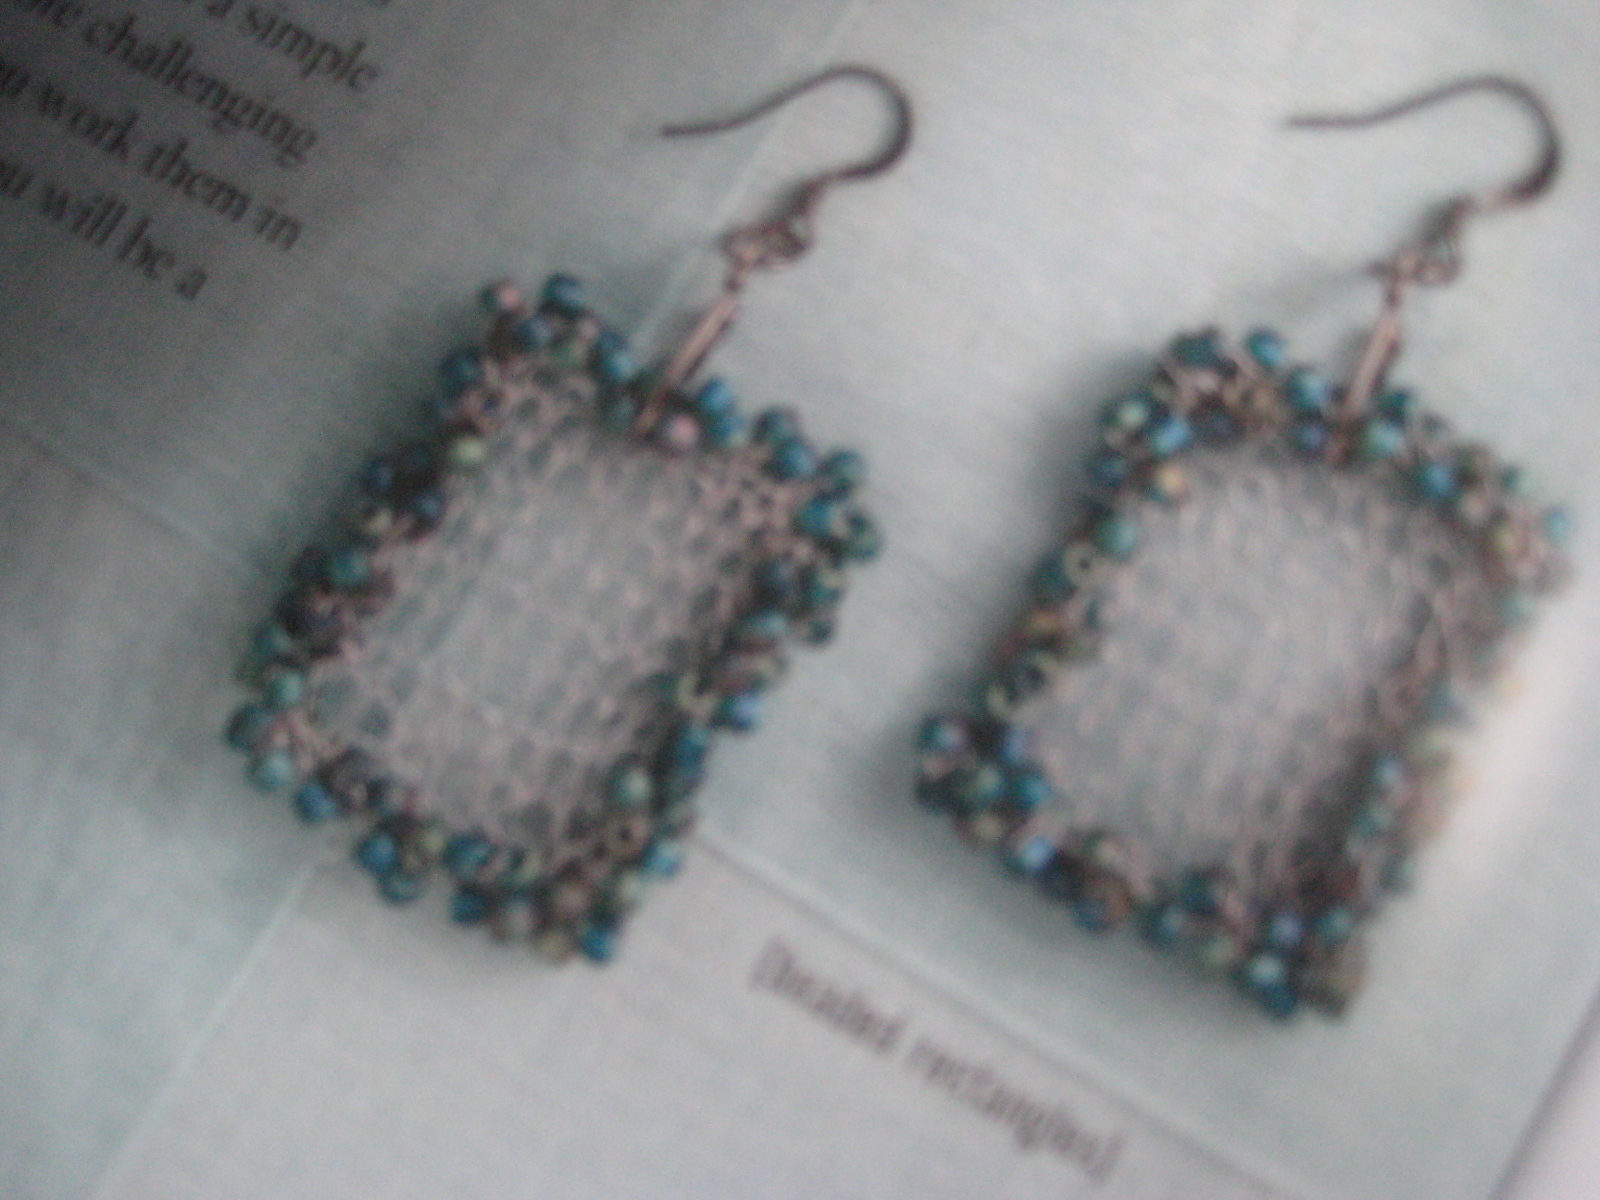 Knitting With Wire And Beads Patterns : Alankarshilpa knitting with beads and wire